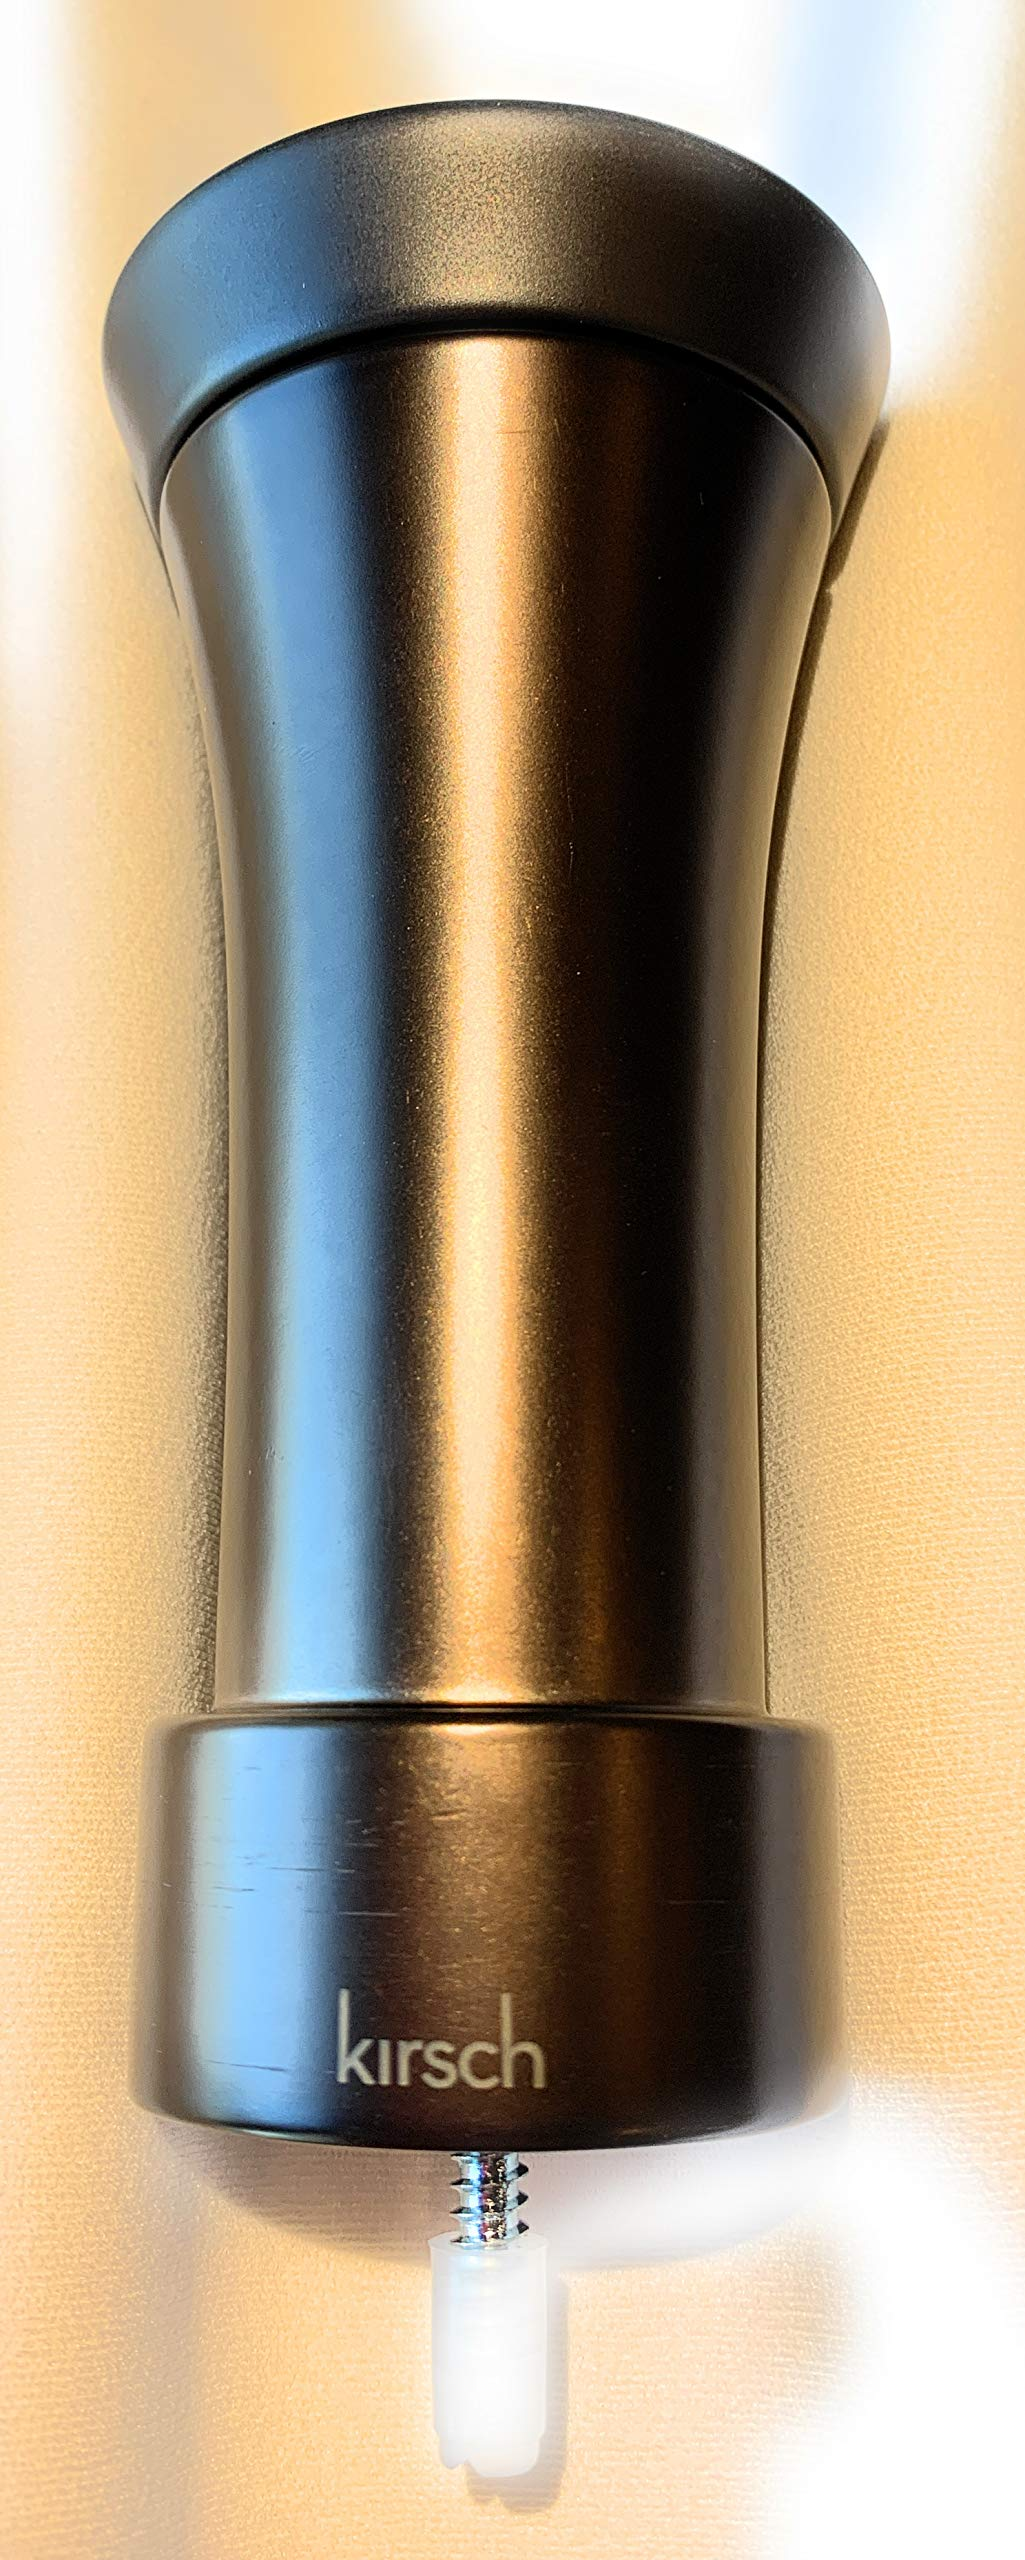 Kirsch Designer Metals Accent 1 3/8'' Finial, Color: Black Bronze Accent Caramel Bronze (1831722)